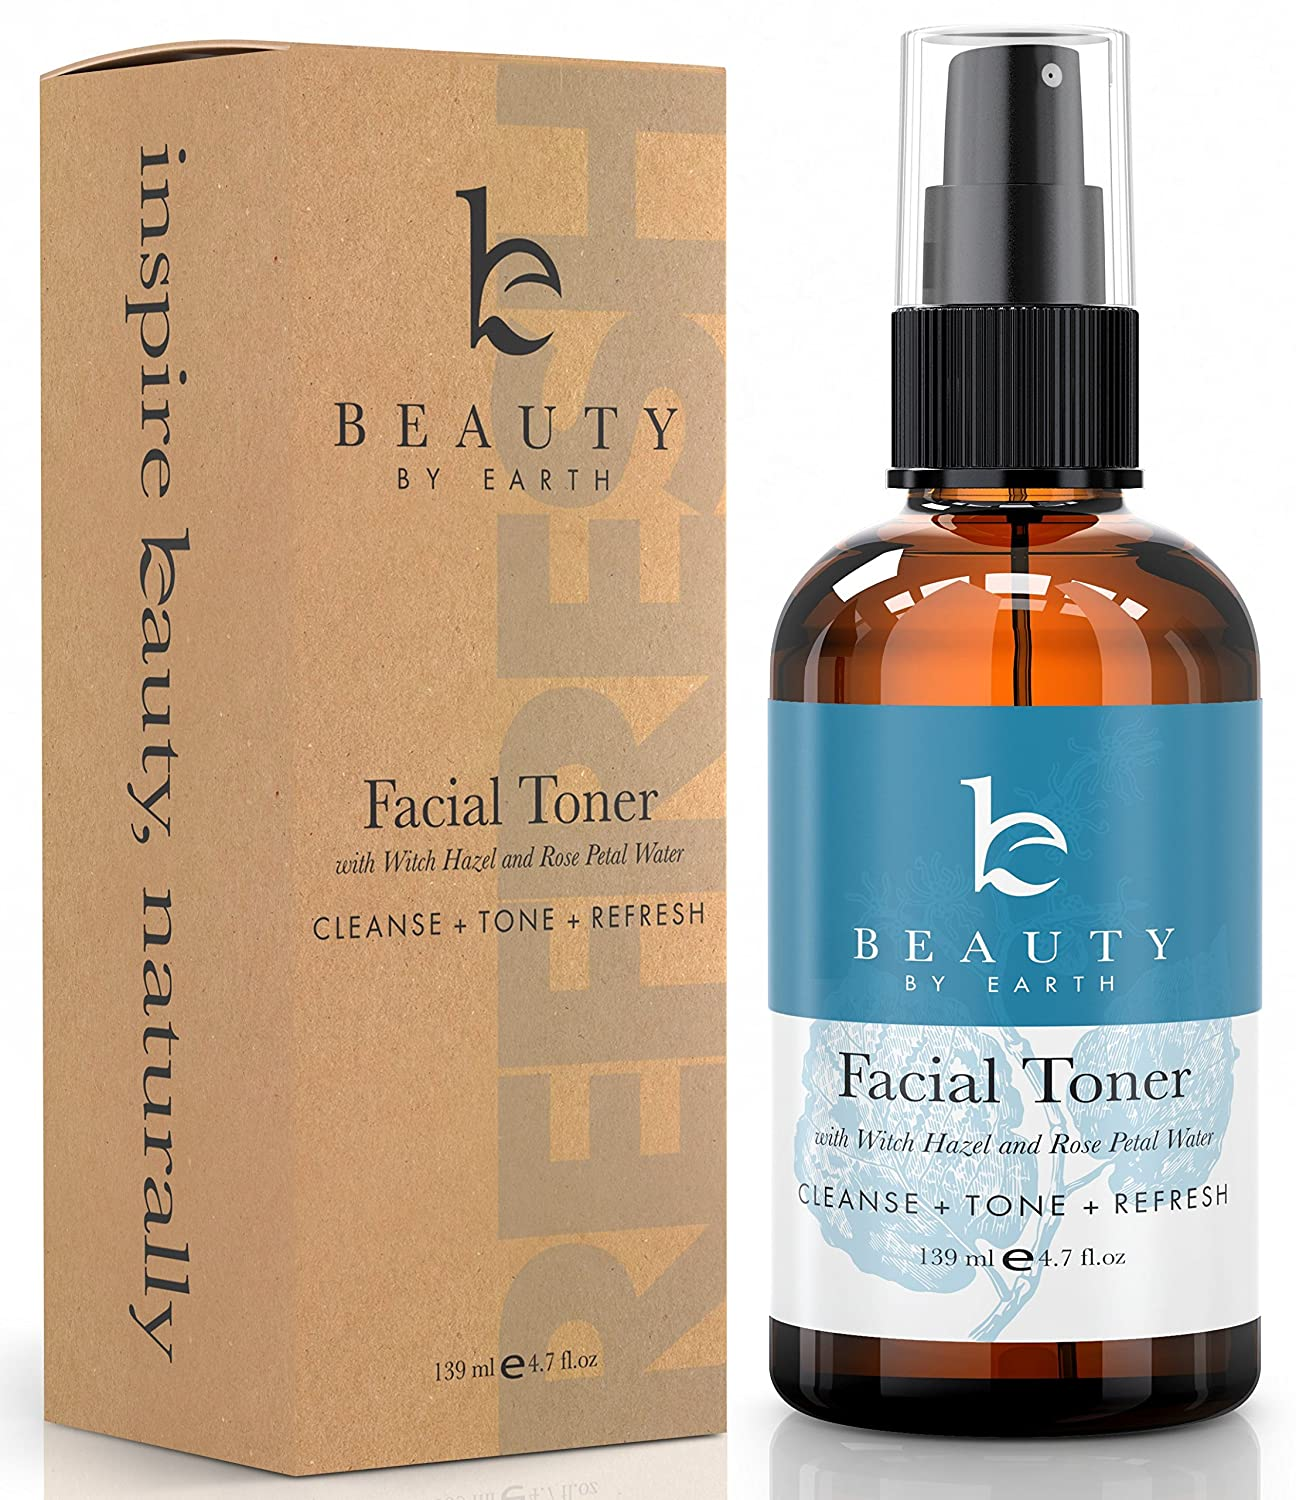 Beauty By Earth Facial Toner; Organic & Natural Witch Hazel & Rose Water Astringent; Best Hydrating & Clarifying Face Spray for Daily Use; Alcohol & Oil Free Skin Cleansing for Men & Women